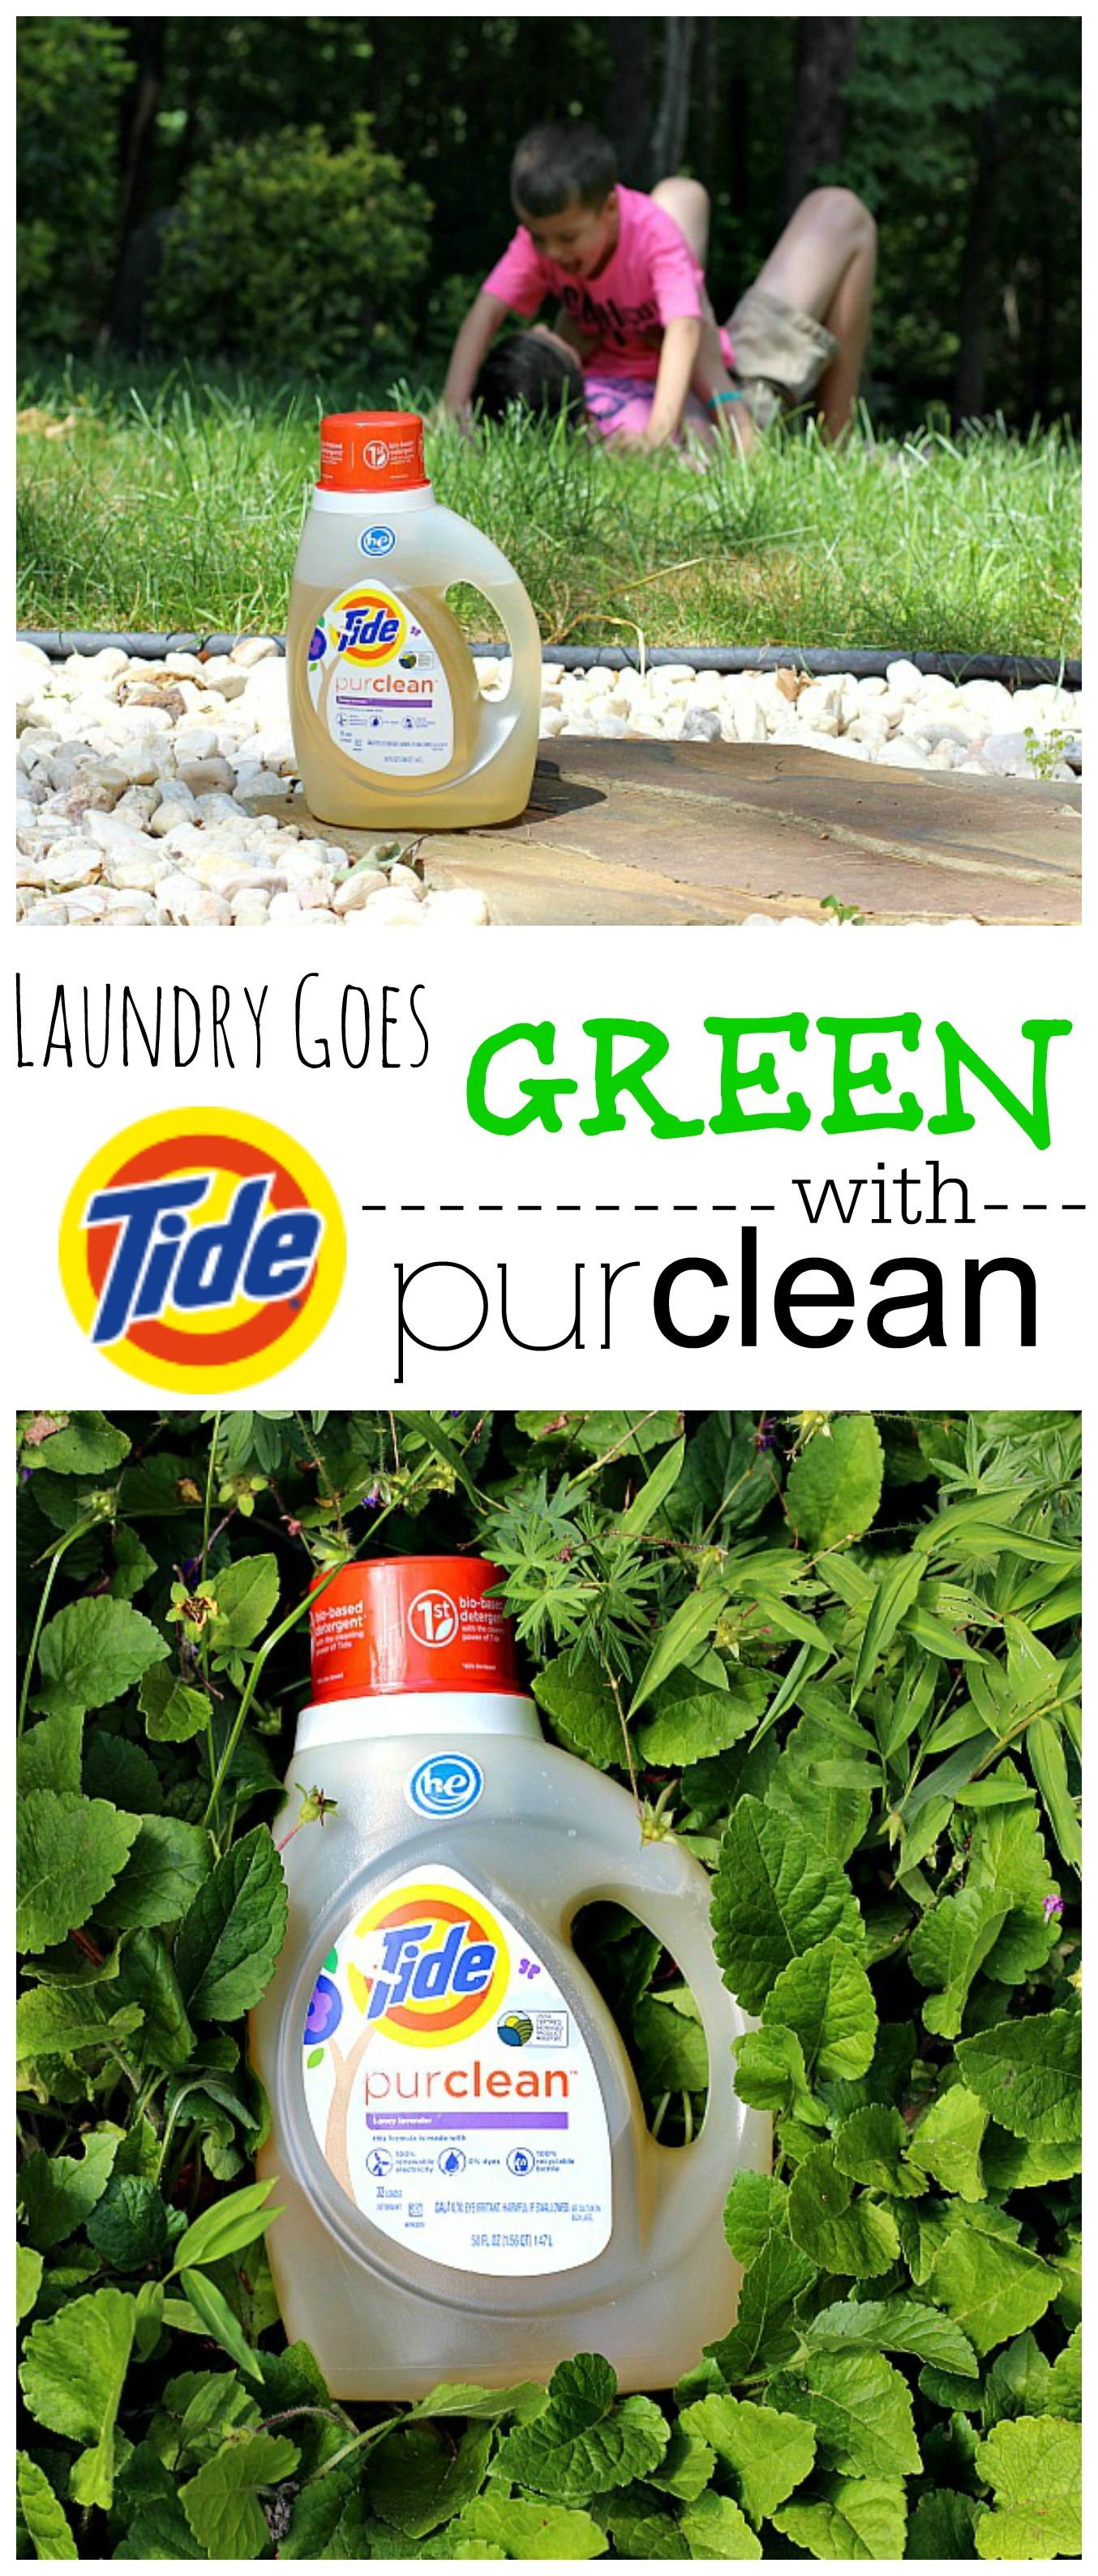 Laundry Goes Green with Tide Purclean